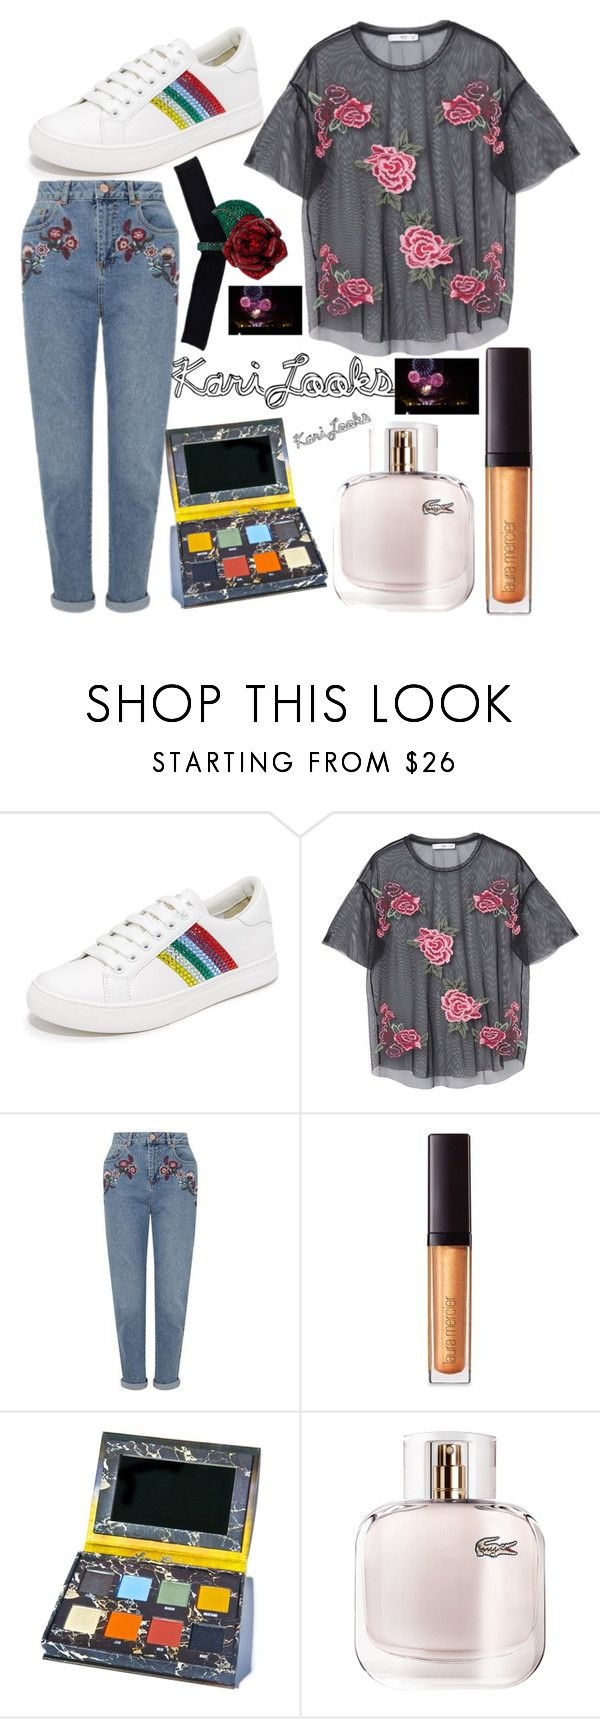 """7 seven 🌈"" by karilooks ❤ liked on Polyvore featuring Marc Jacobs, MANGO, Miss Selfridge, Laura Mercier, Lime Crime and Lacoste"